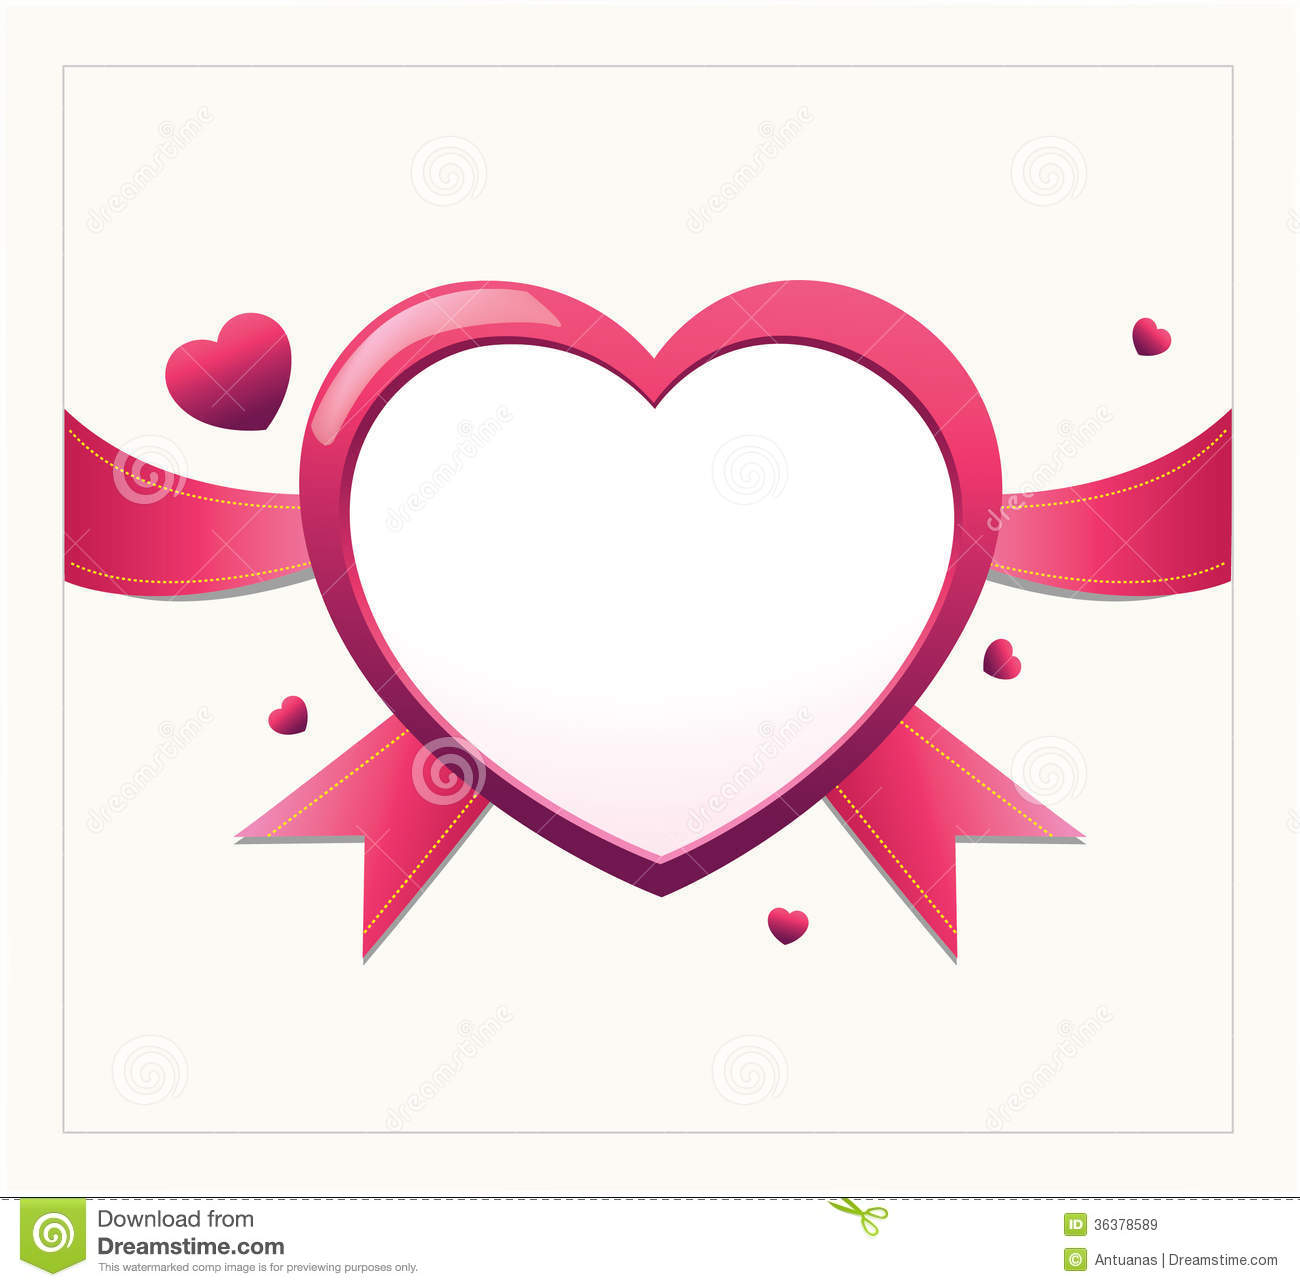 Valentine heart card design royalty free stock images The designlover